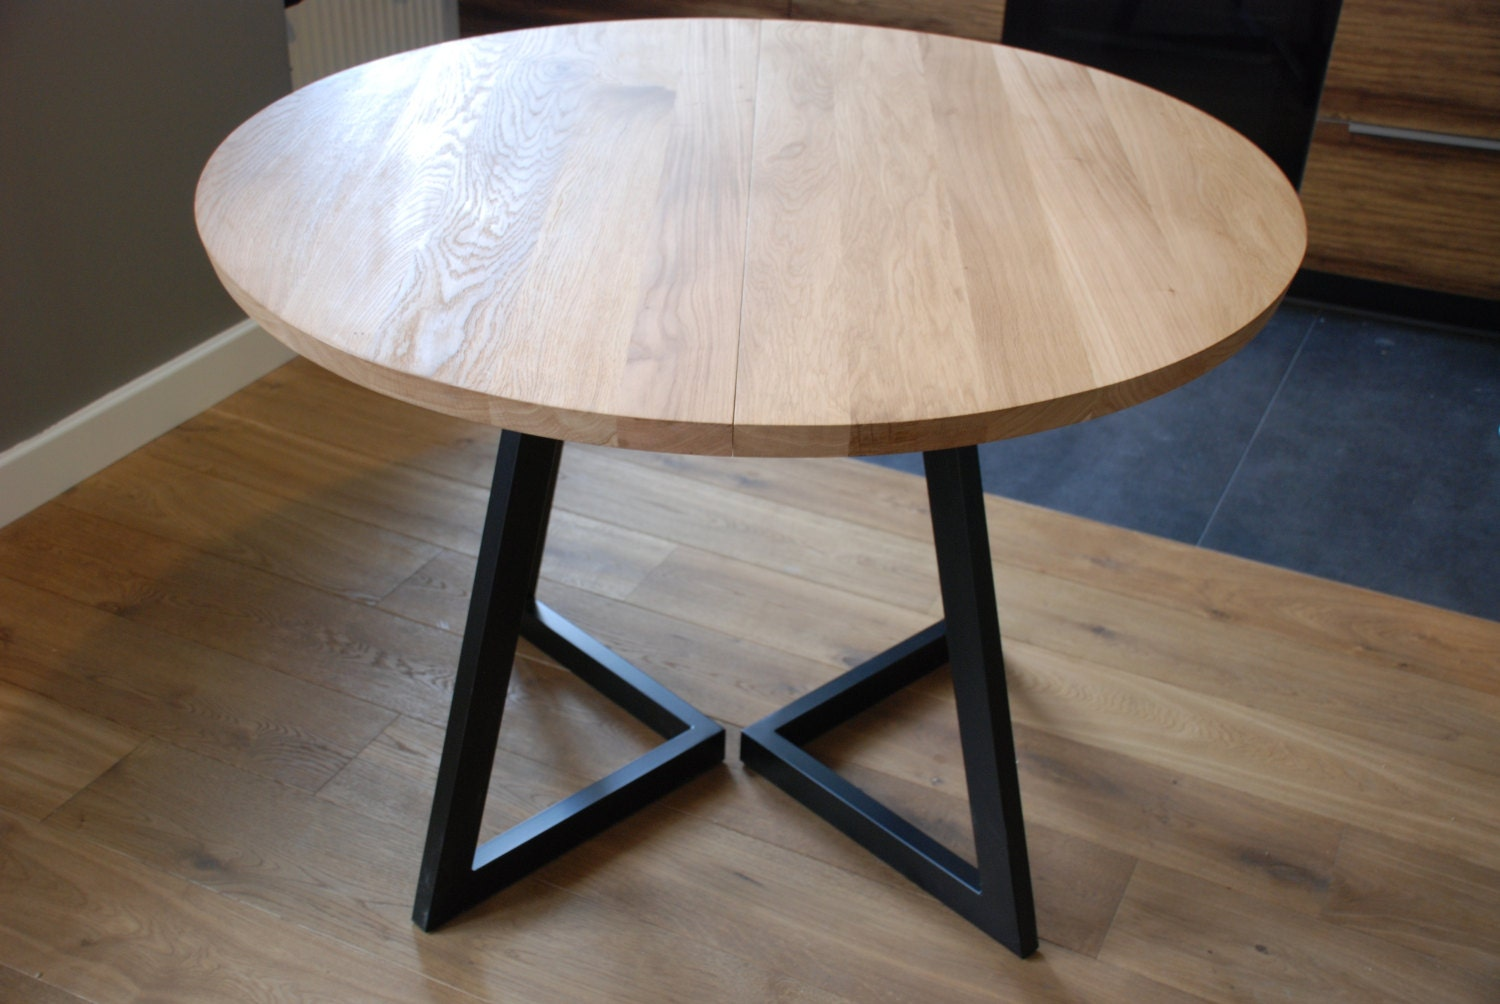 Bois et table ronde rallonges design moderne en acier - Table ronde extensible design ...